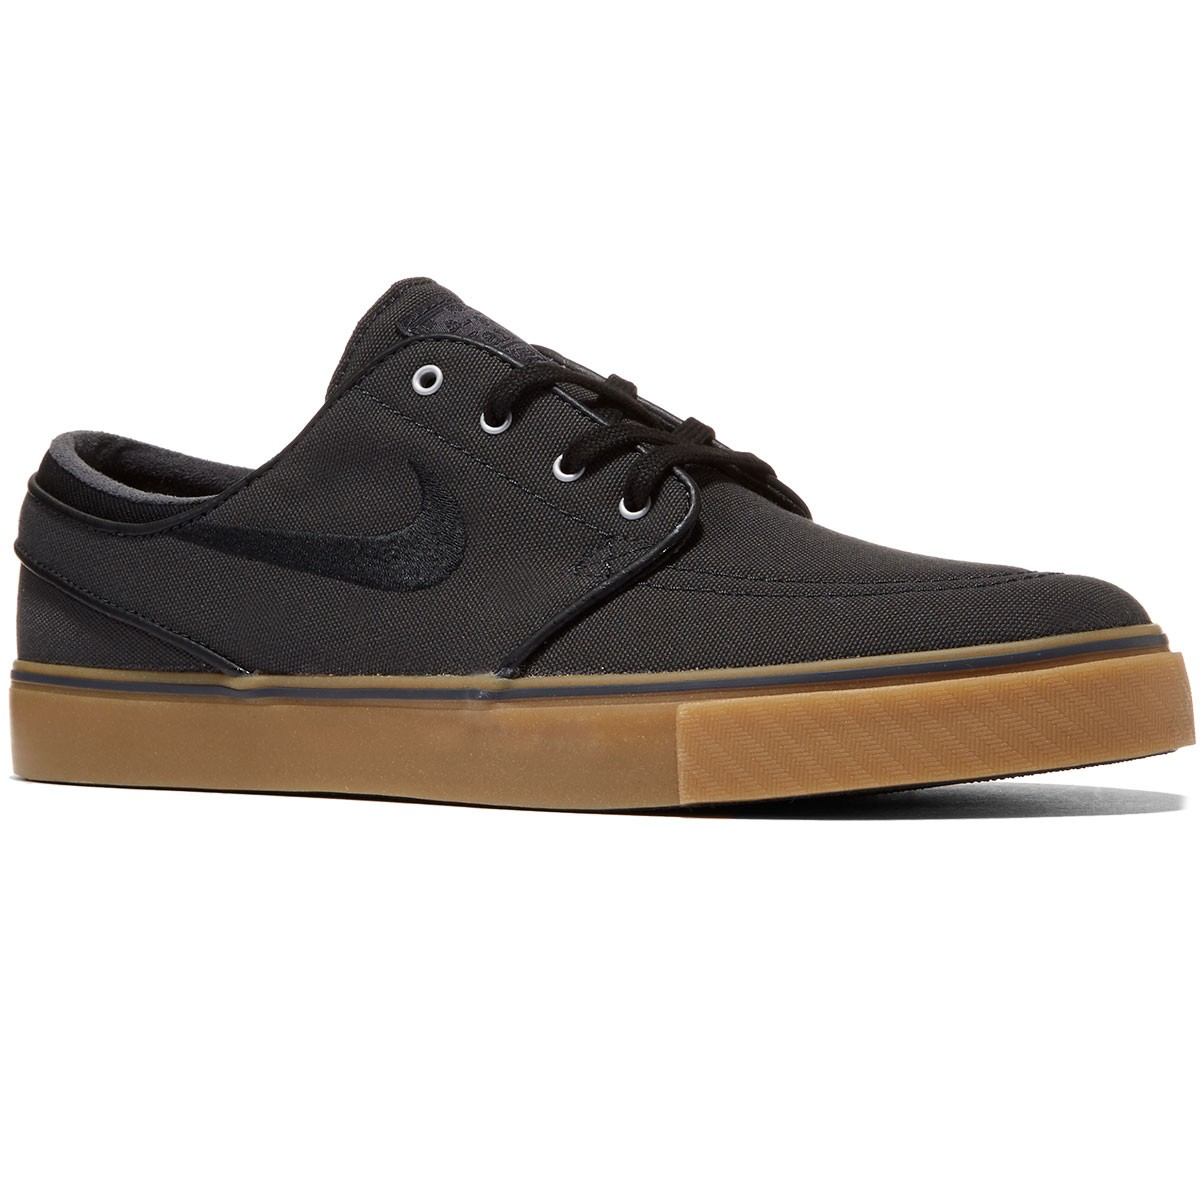 Nike Zoom Stefan Janoski Canvas Shoes - Anthracite/Gum/Silver